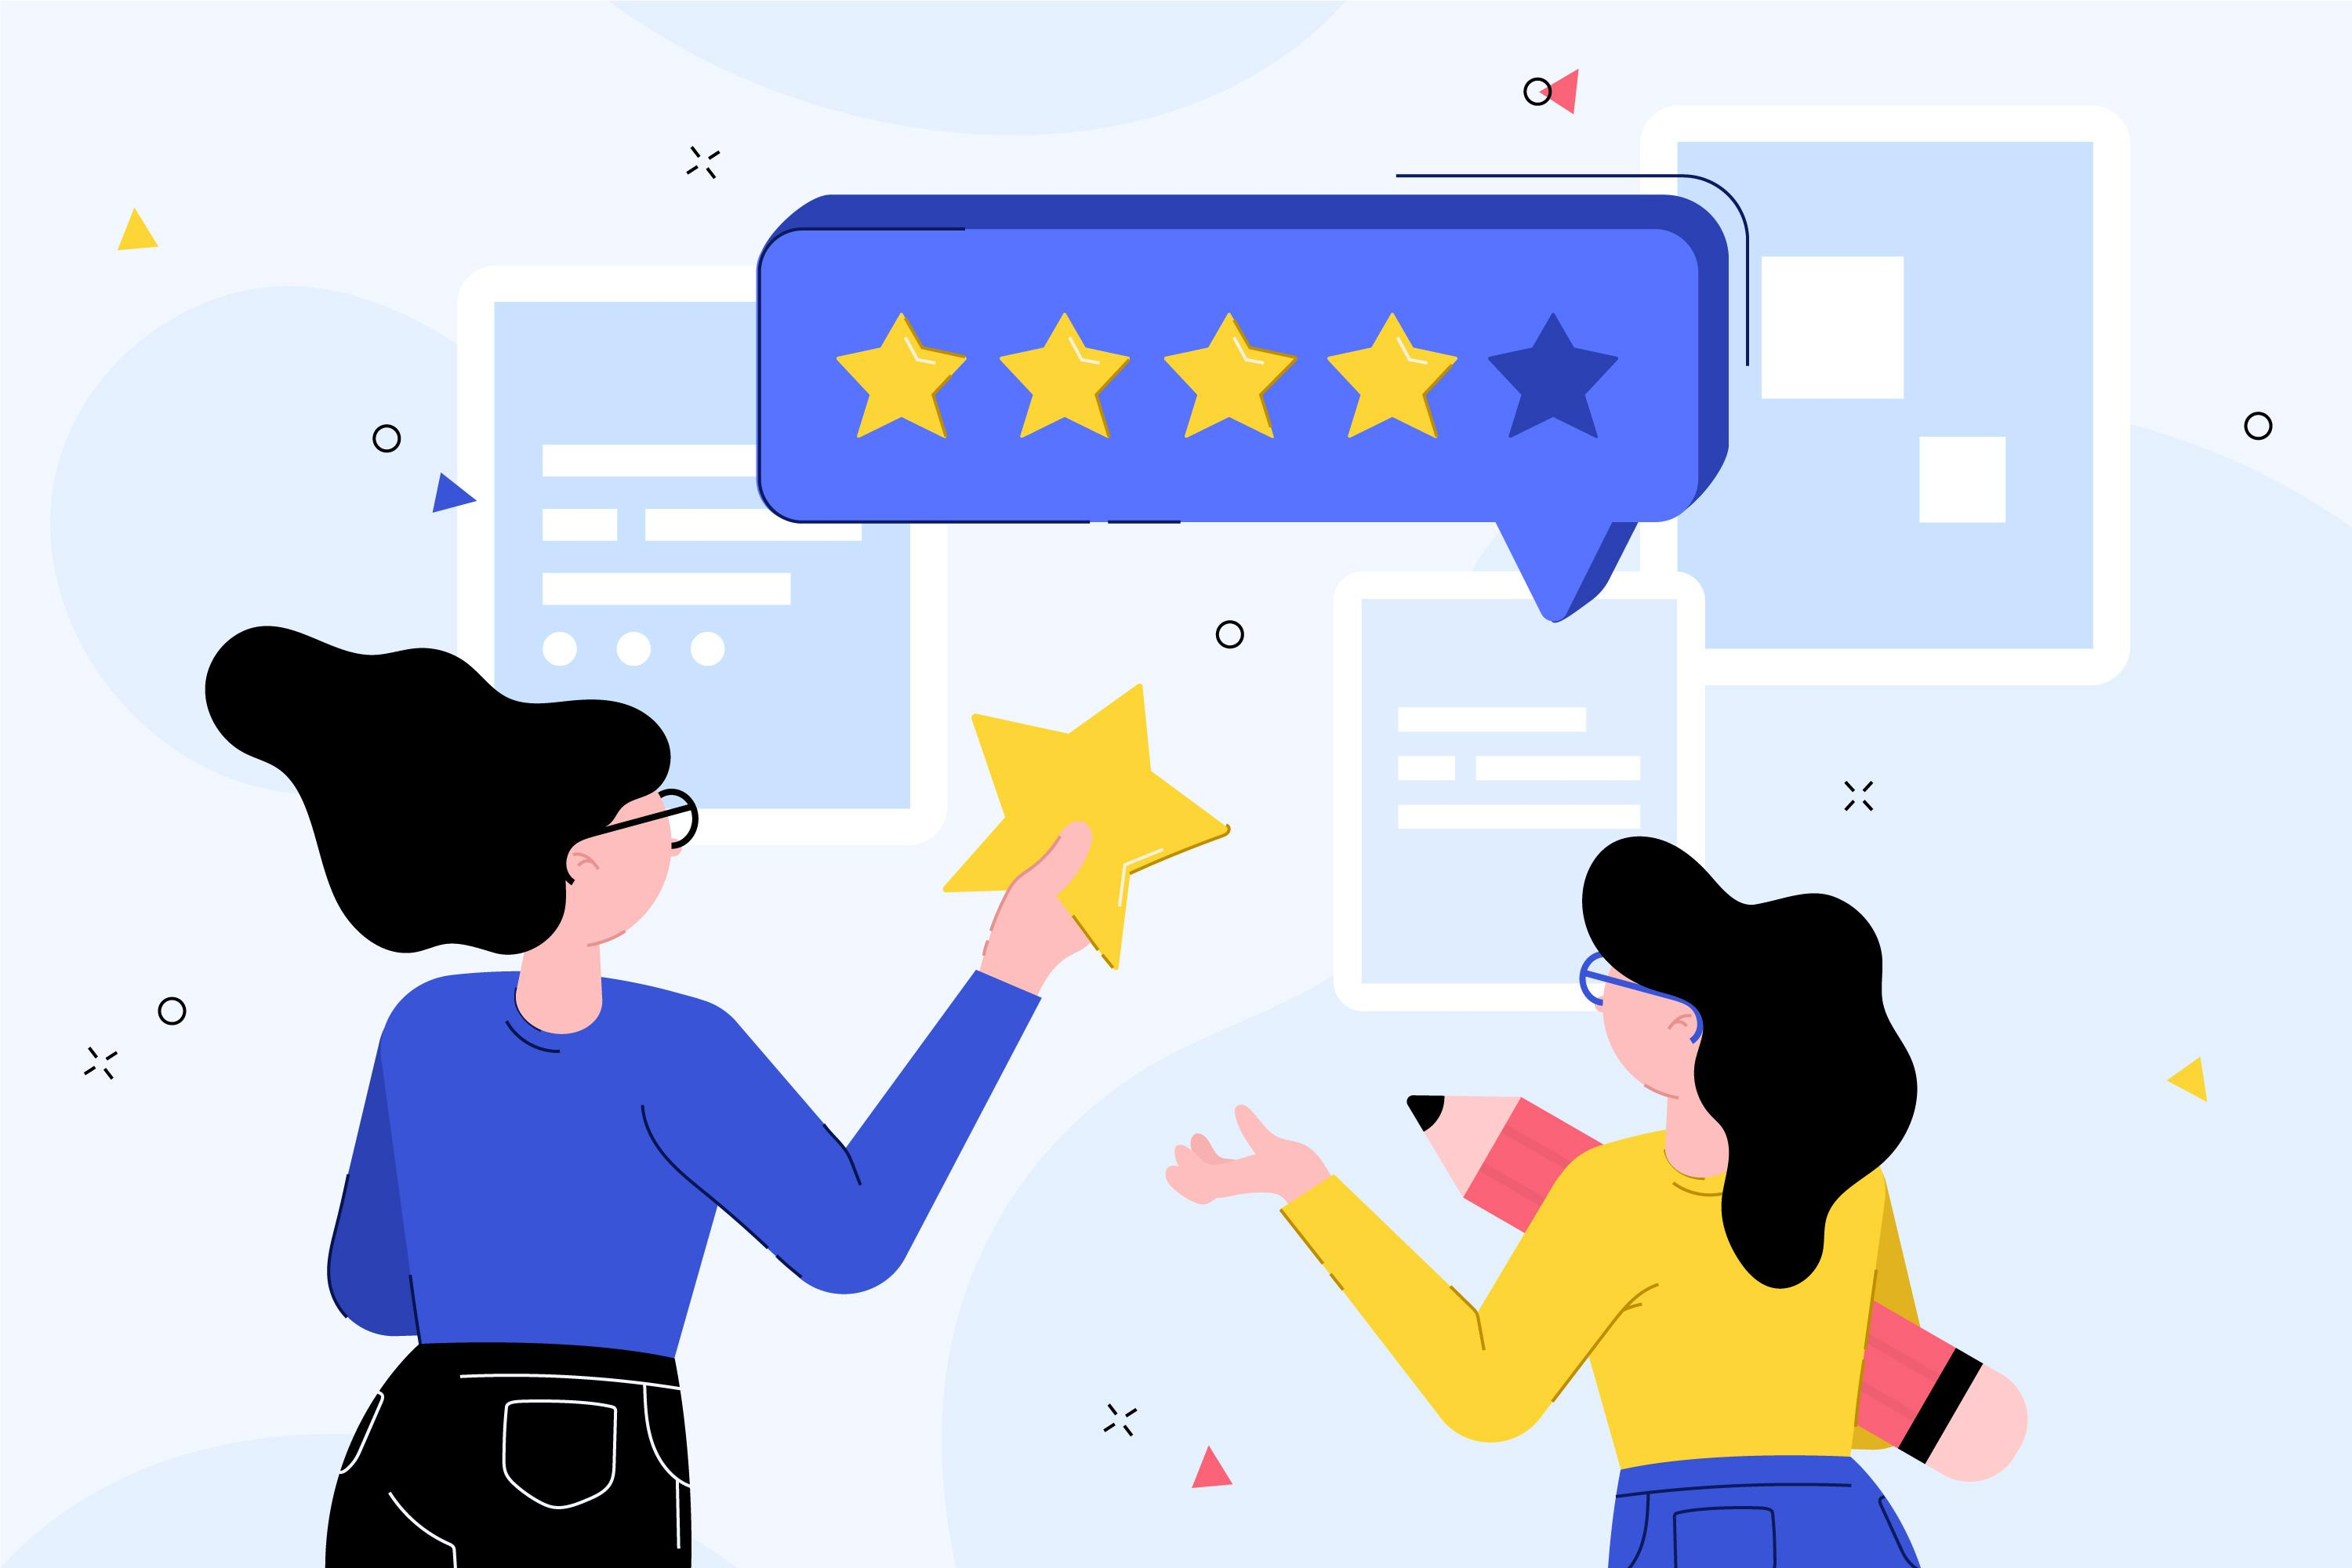 the illustration show two women giving five star review, which helps grow home care business